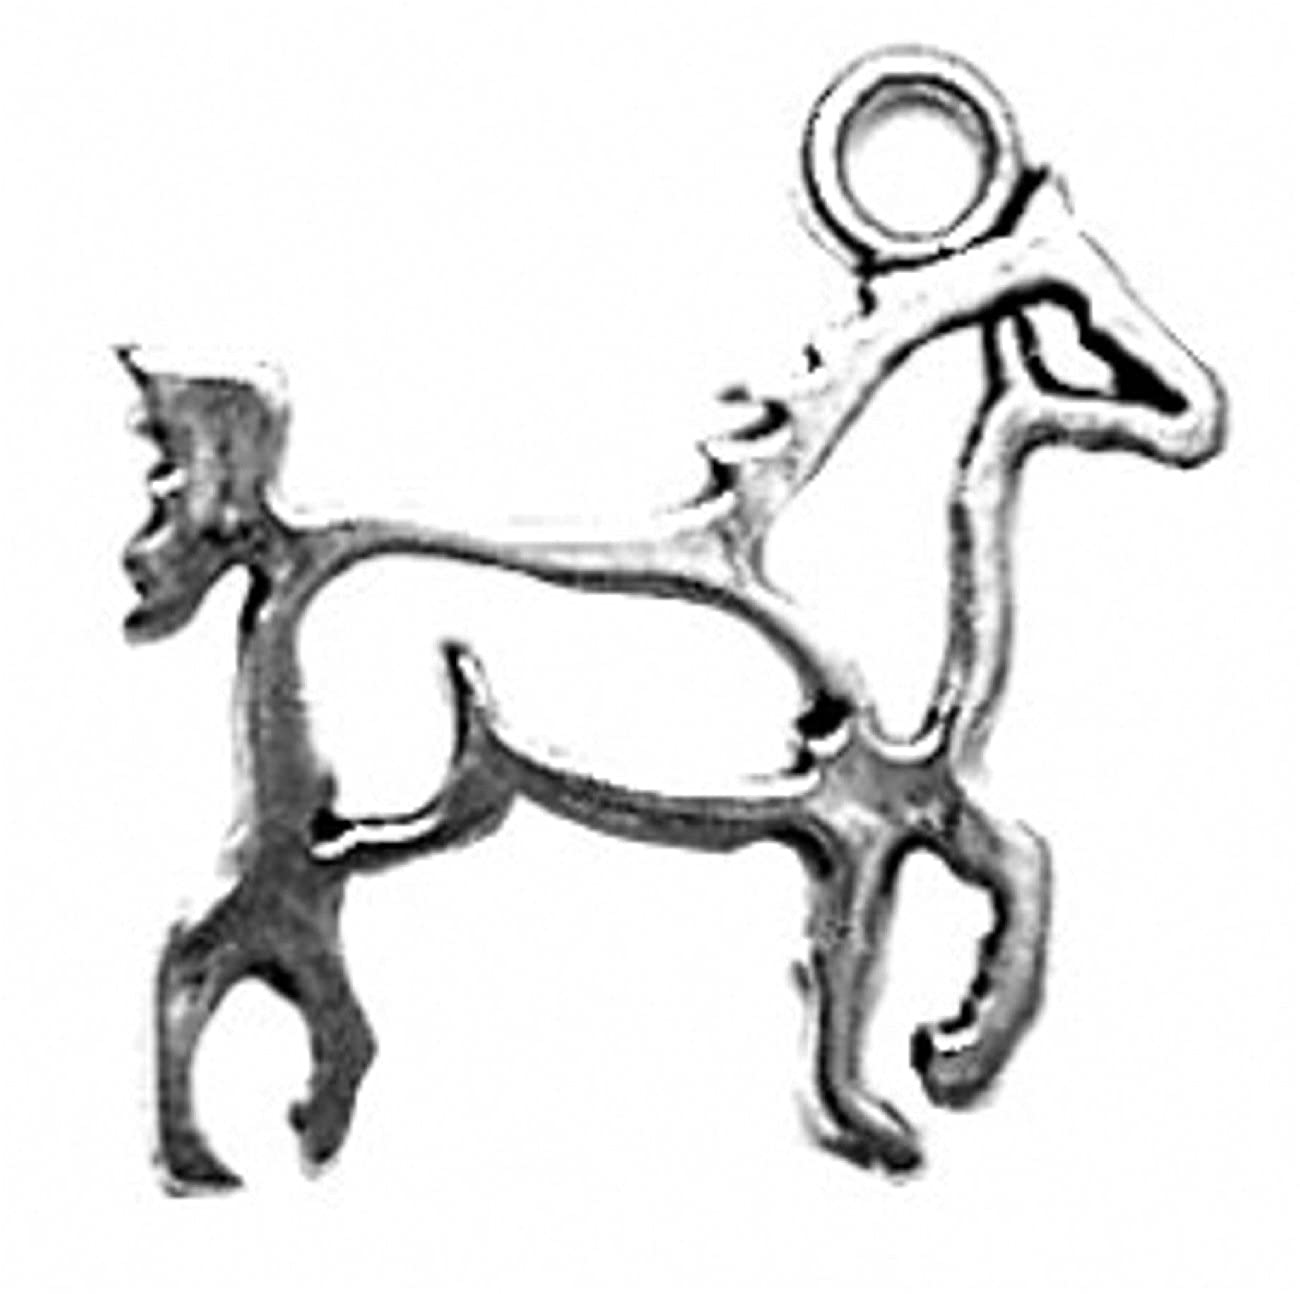 Sterling Silver 7 4.5mm Charm Bracelet With Attached Small Cutout Silhoutte Walking Horse Charm